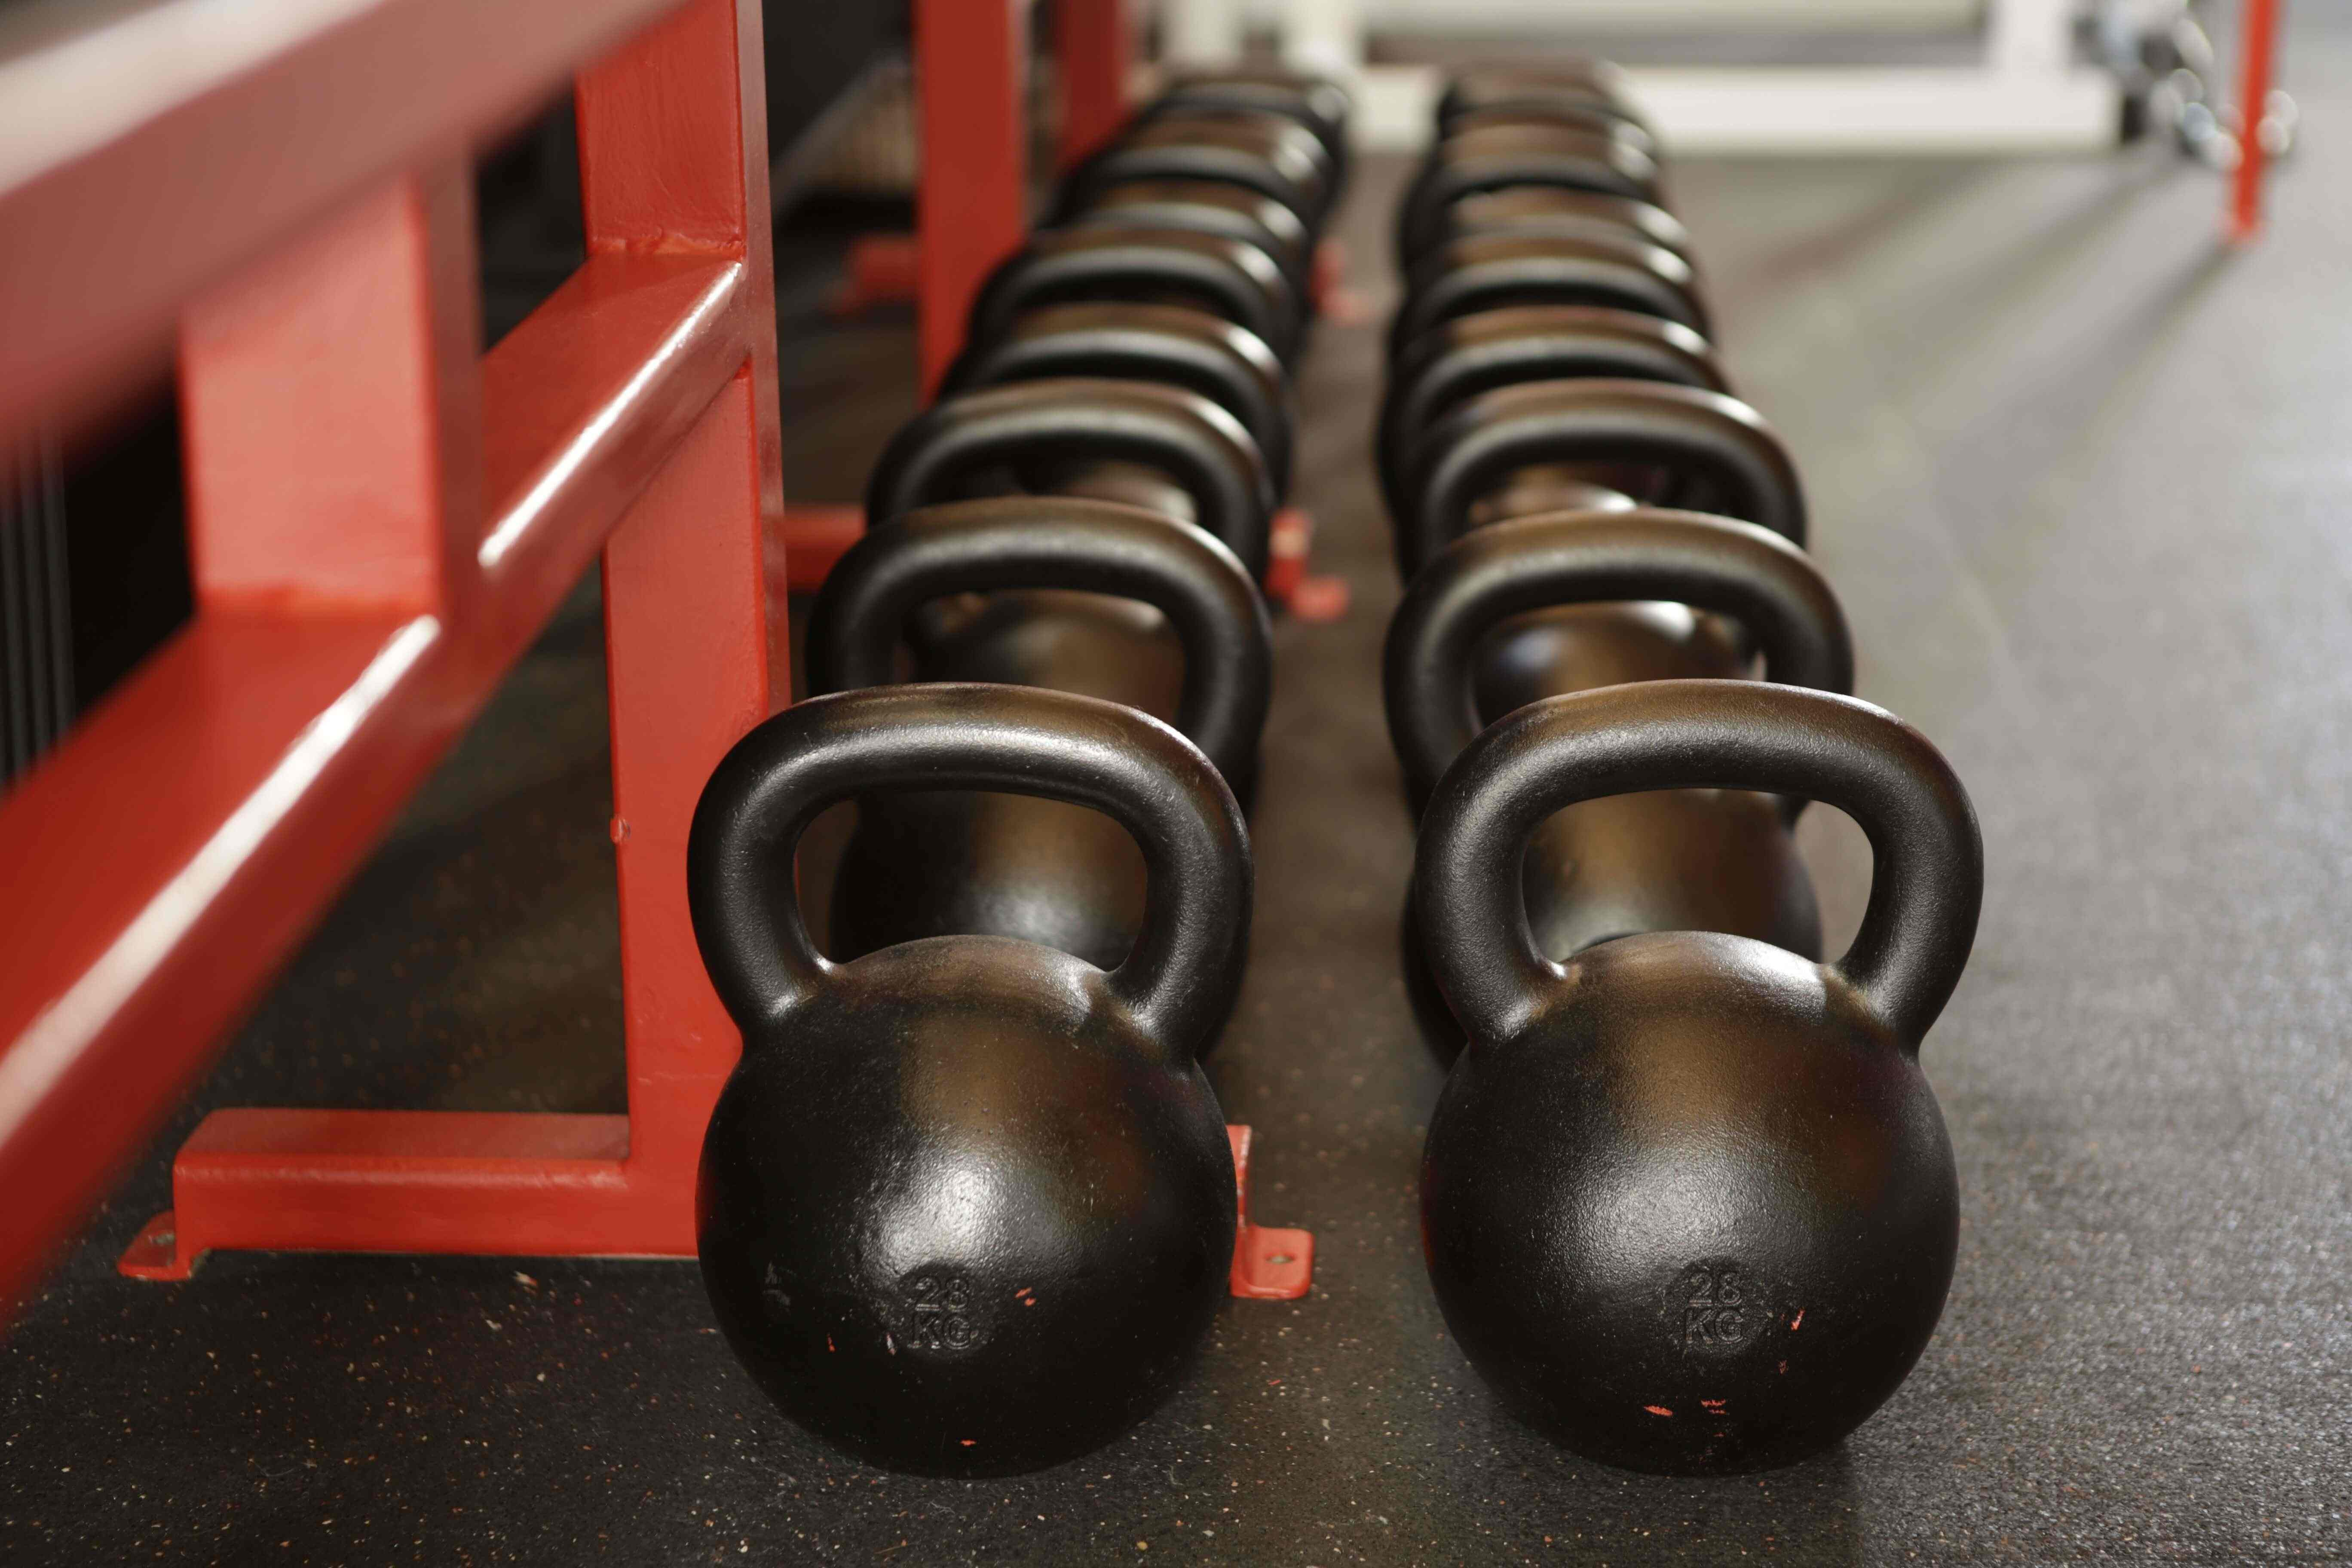 Enhance Fitness Facilities with Antimicrobial Athletic and Gym Equipment